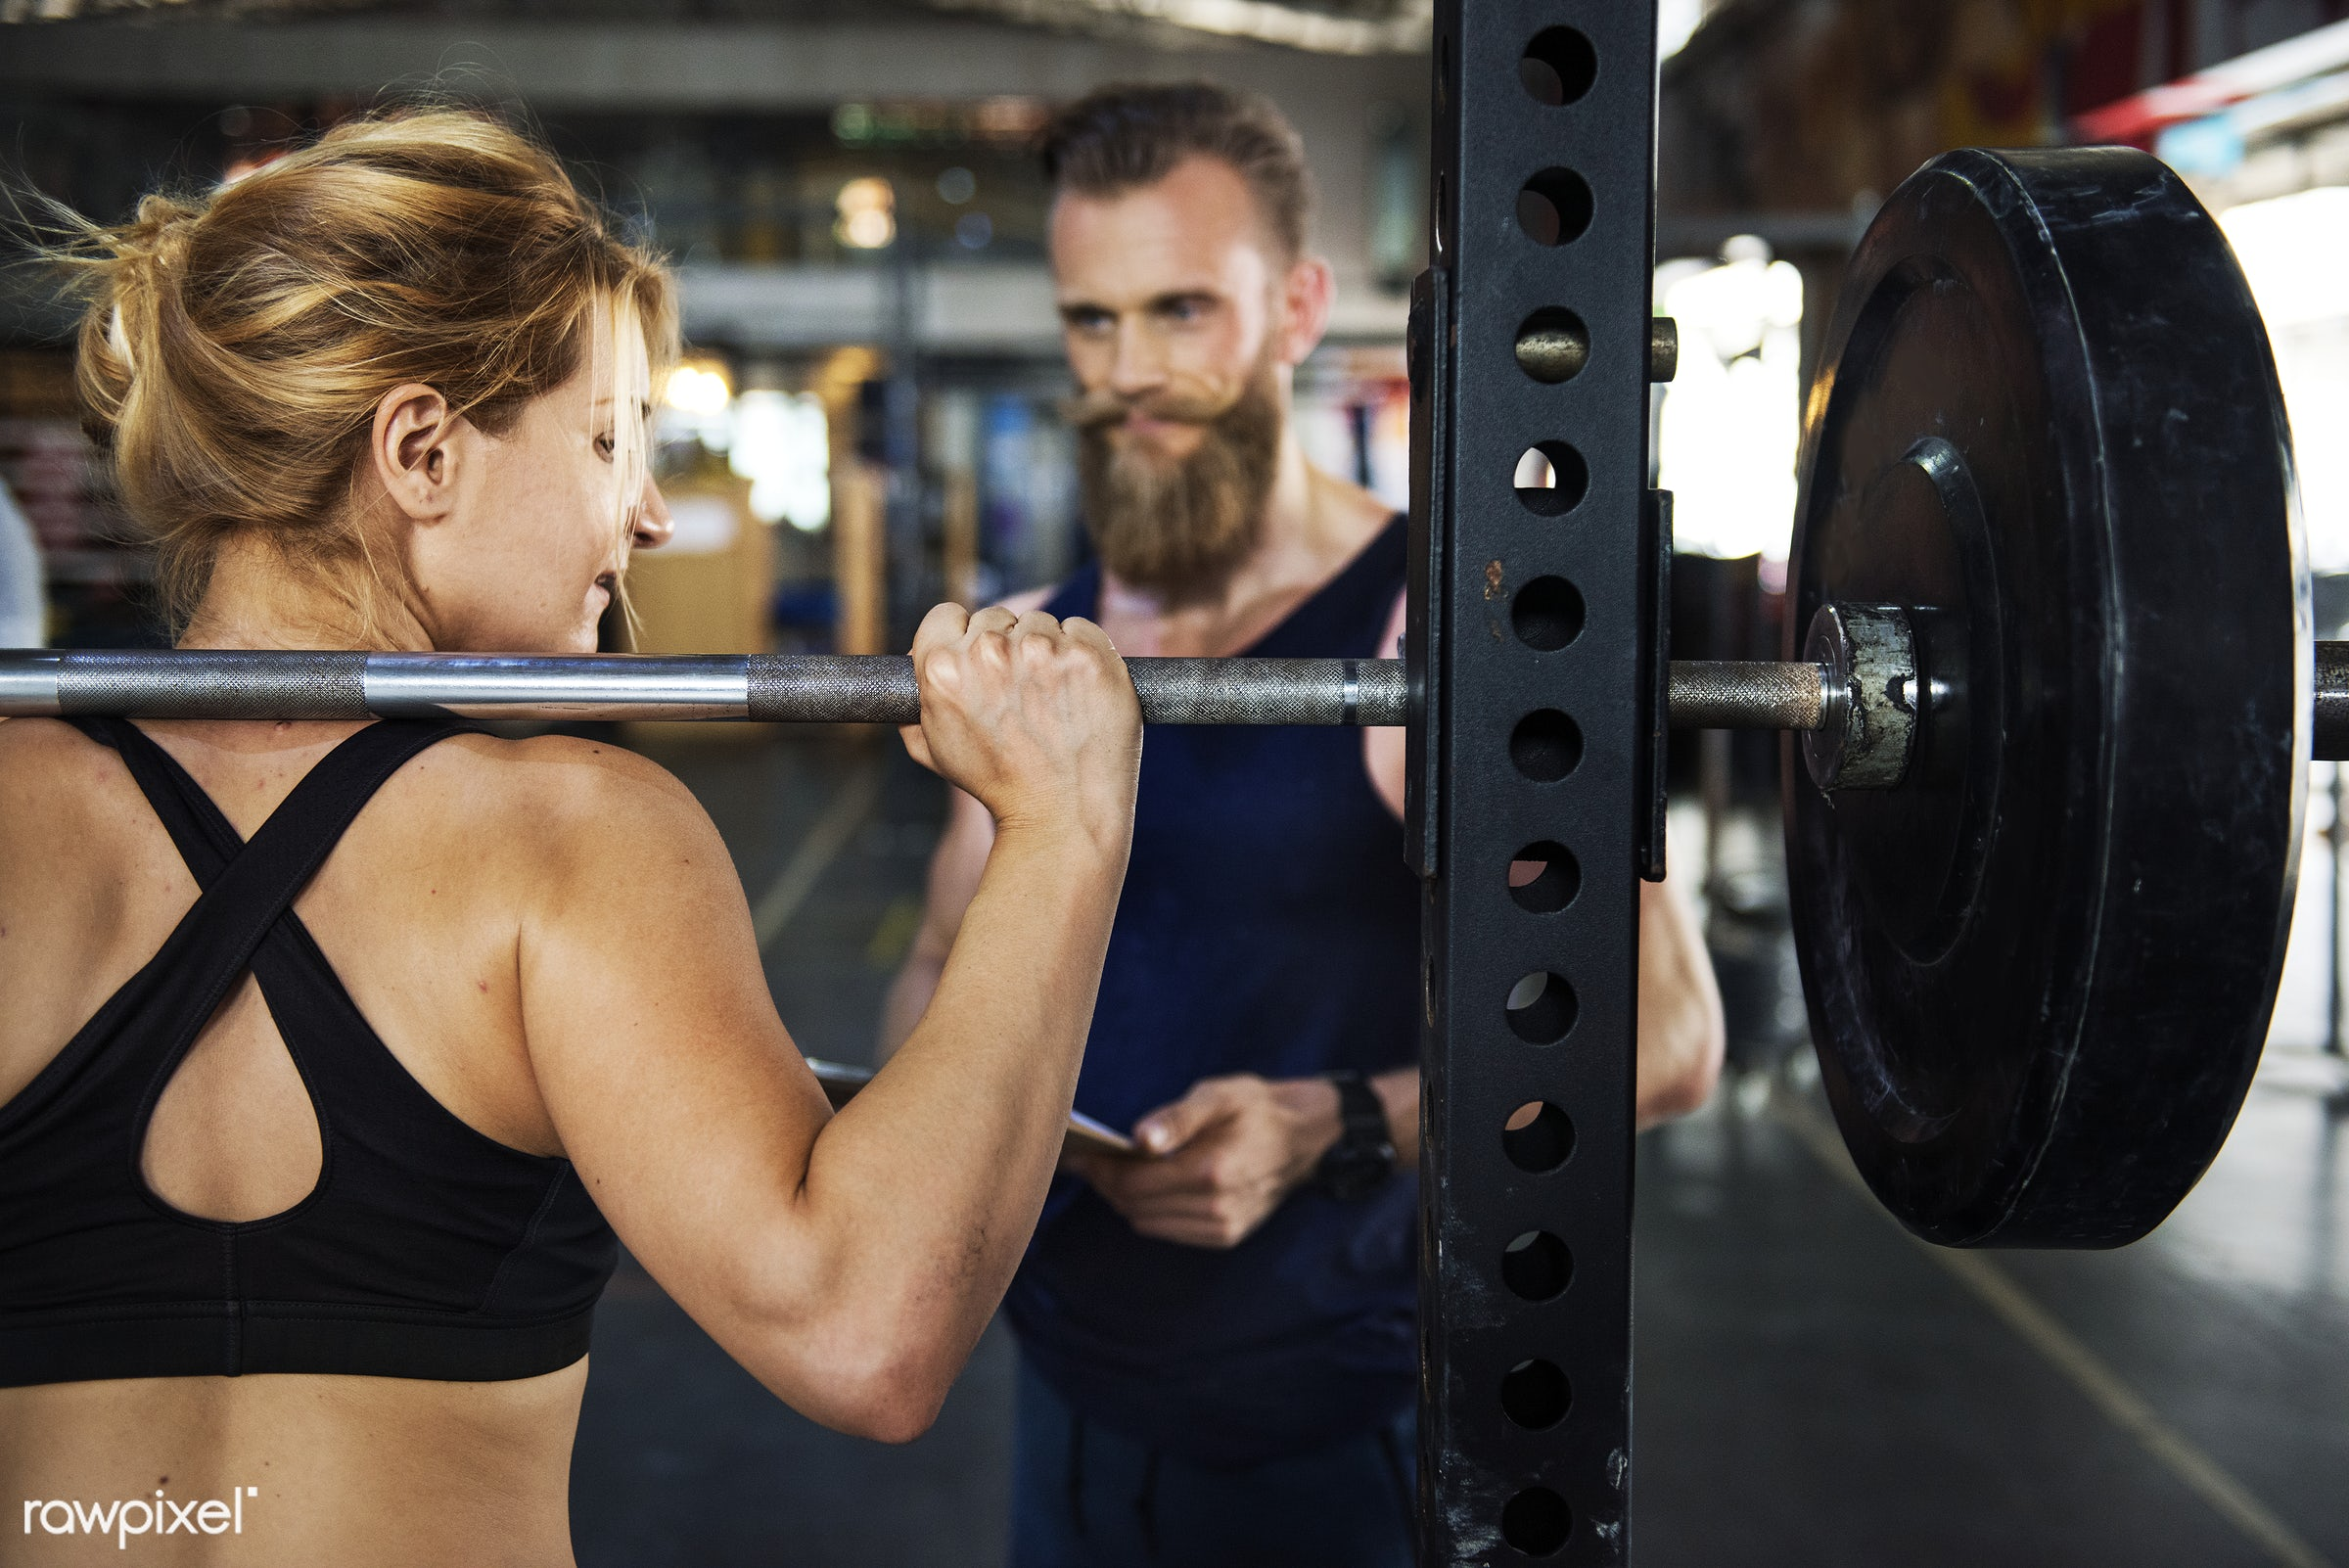 Personal trainer at the gym - active, activity, athlete, athletic, barbell, body, buff, crossfit, equipment, female, fit,...